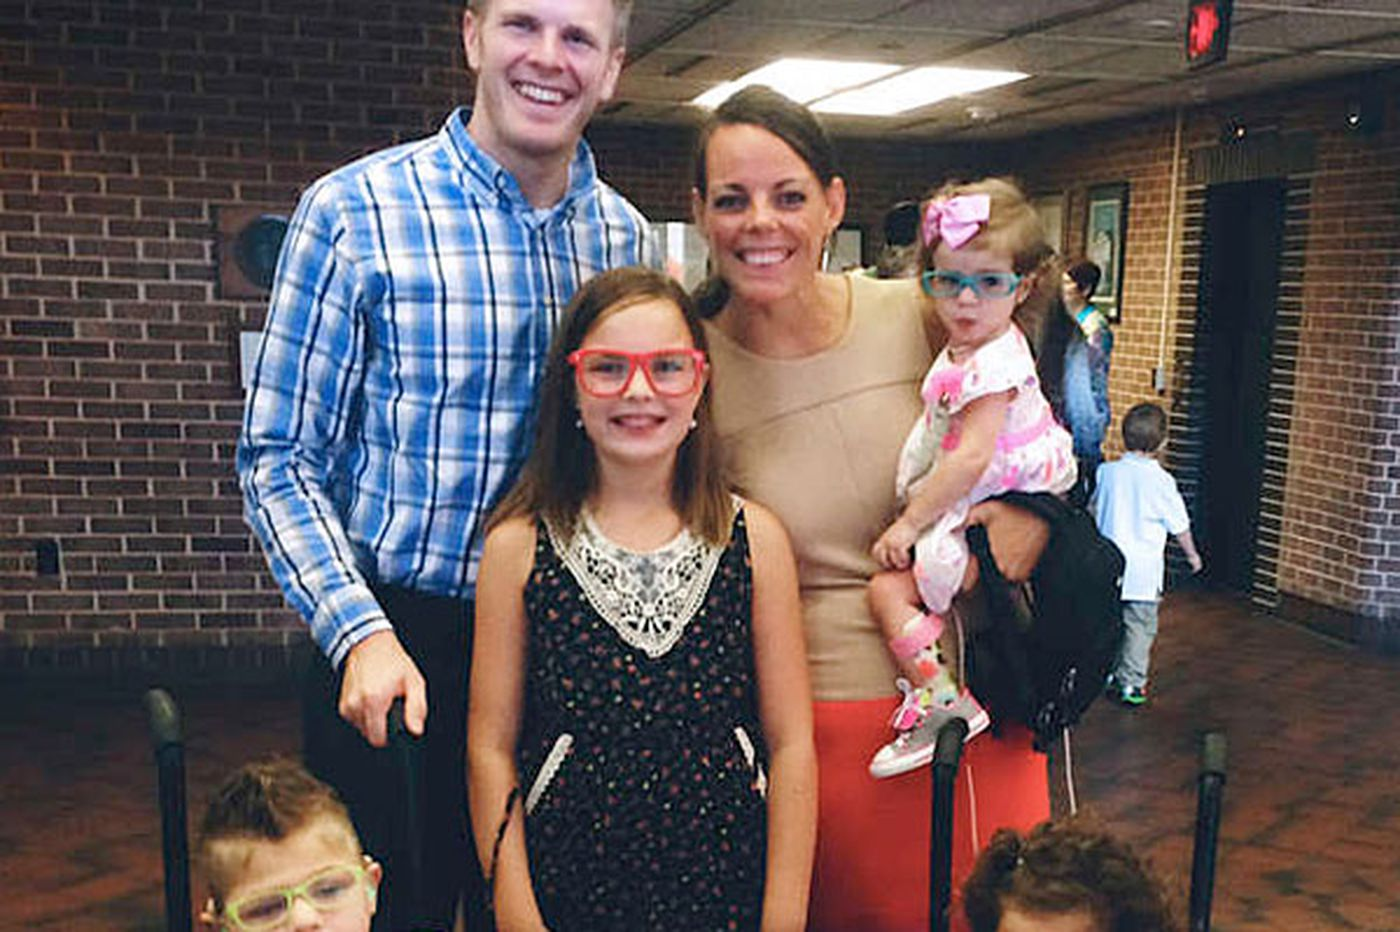 The Parent Trip: Karen Owens and Adam Owens of Wyomissing